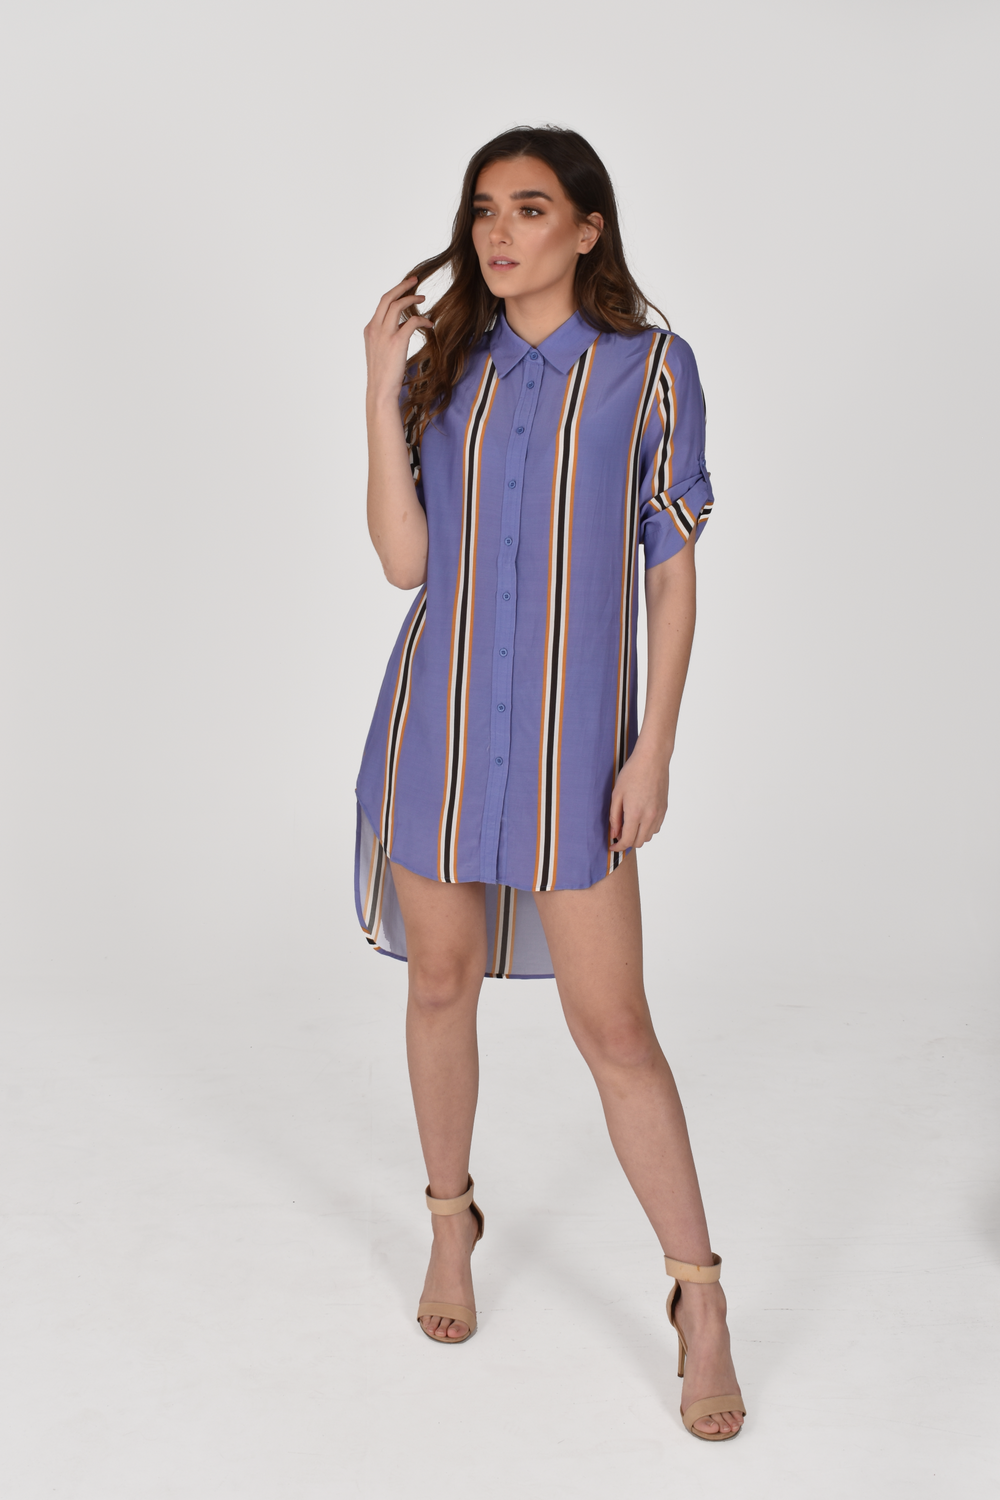 Frida Short Front Long Back Shirt